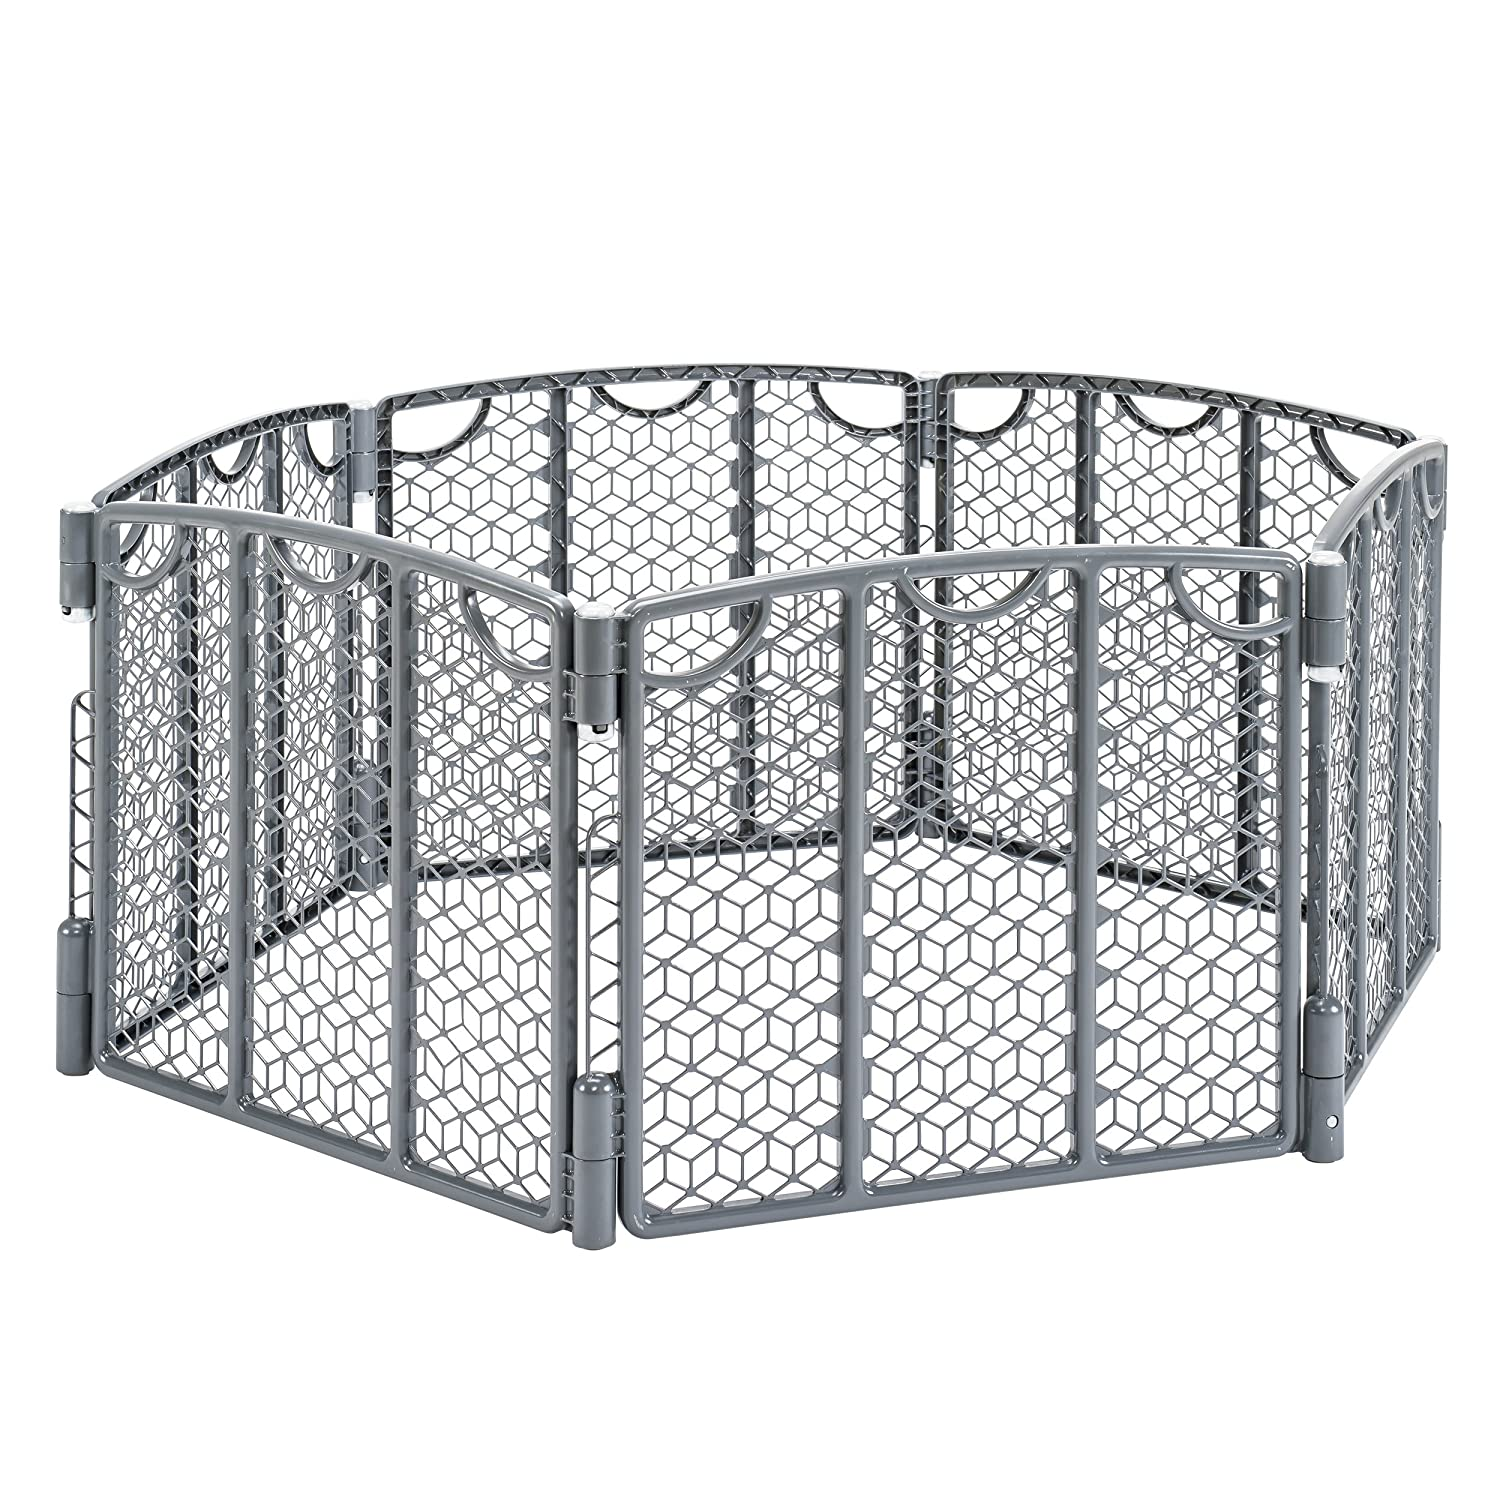 Evenflo Versatile Play Space, Cool Gray 23012148